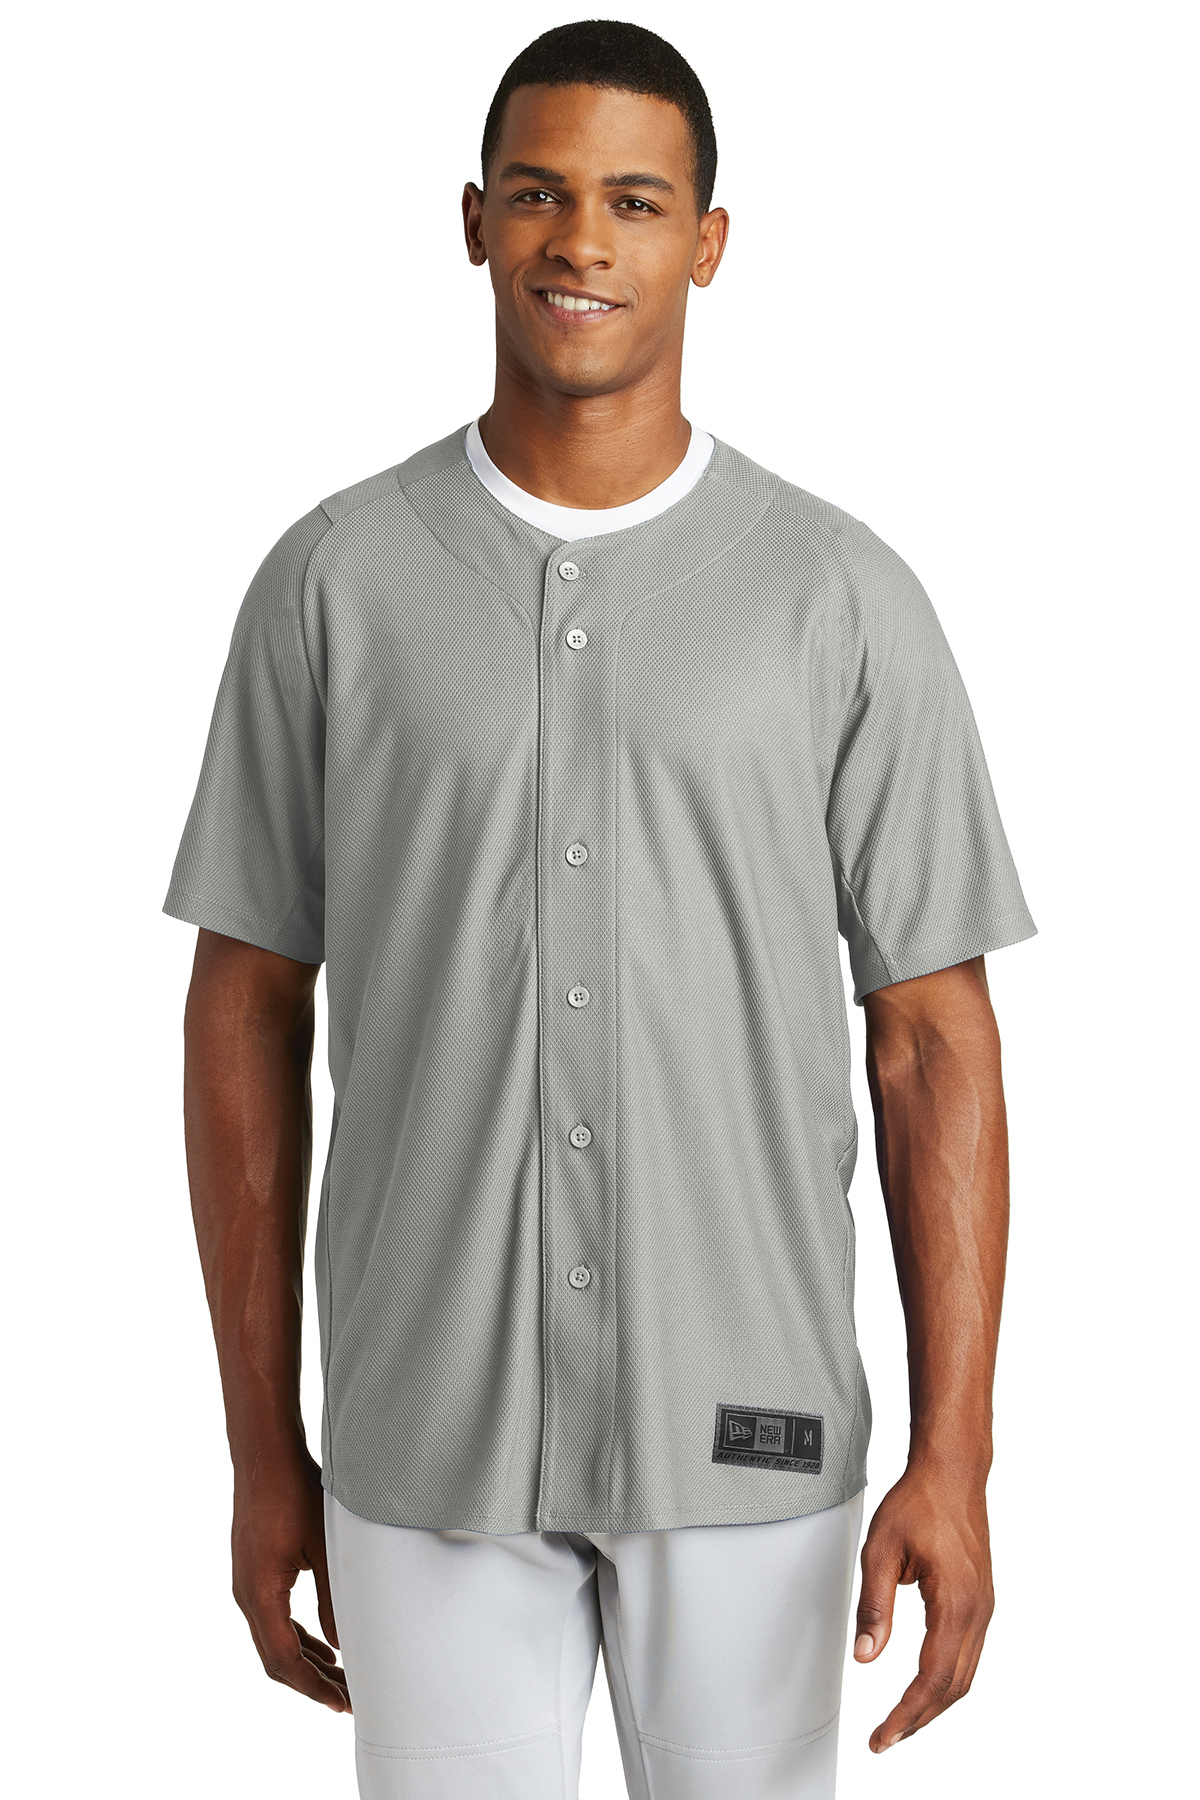 New Era NEA220 - Men's Diamond Era Full Button Jersey